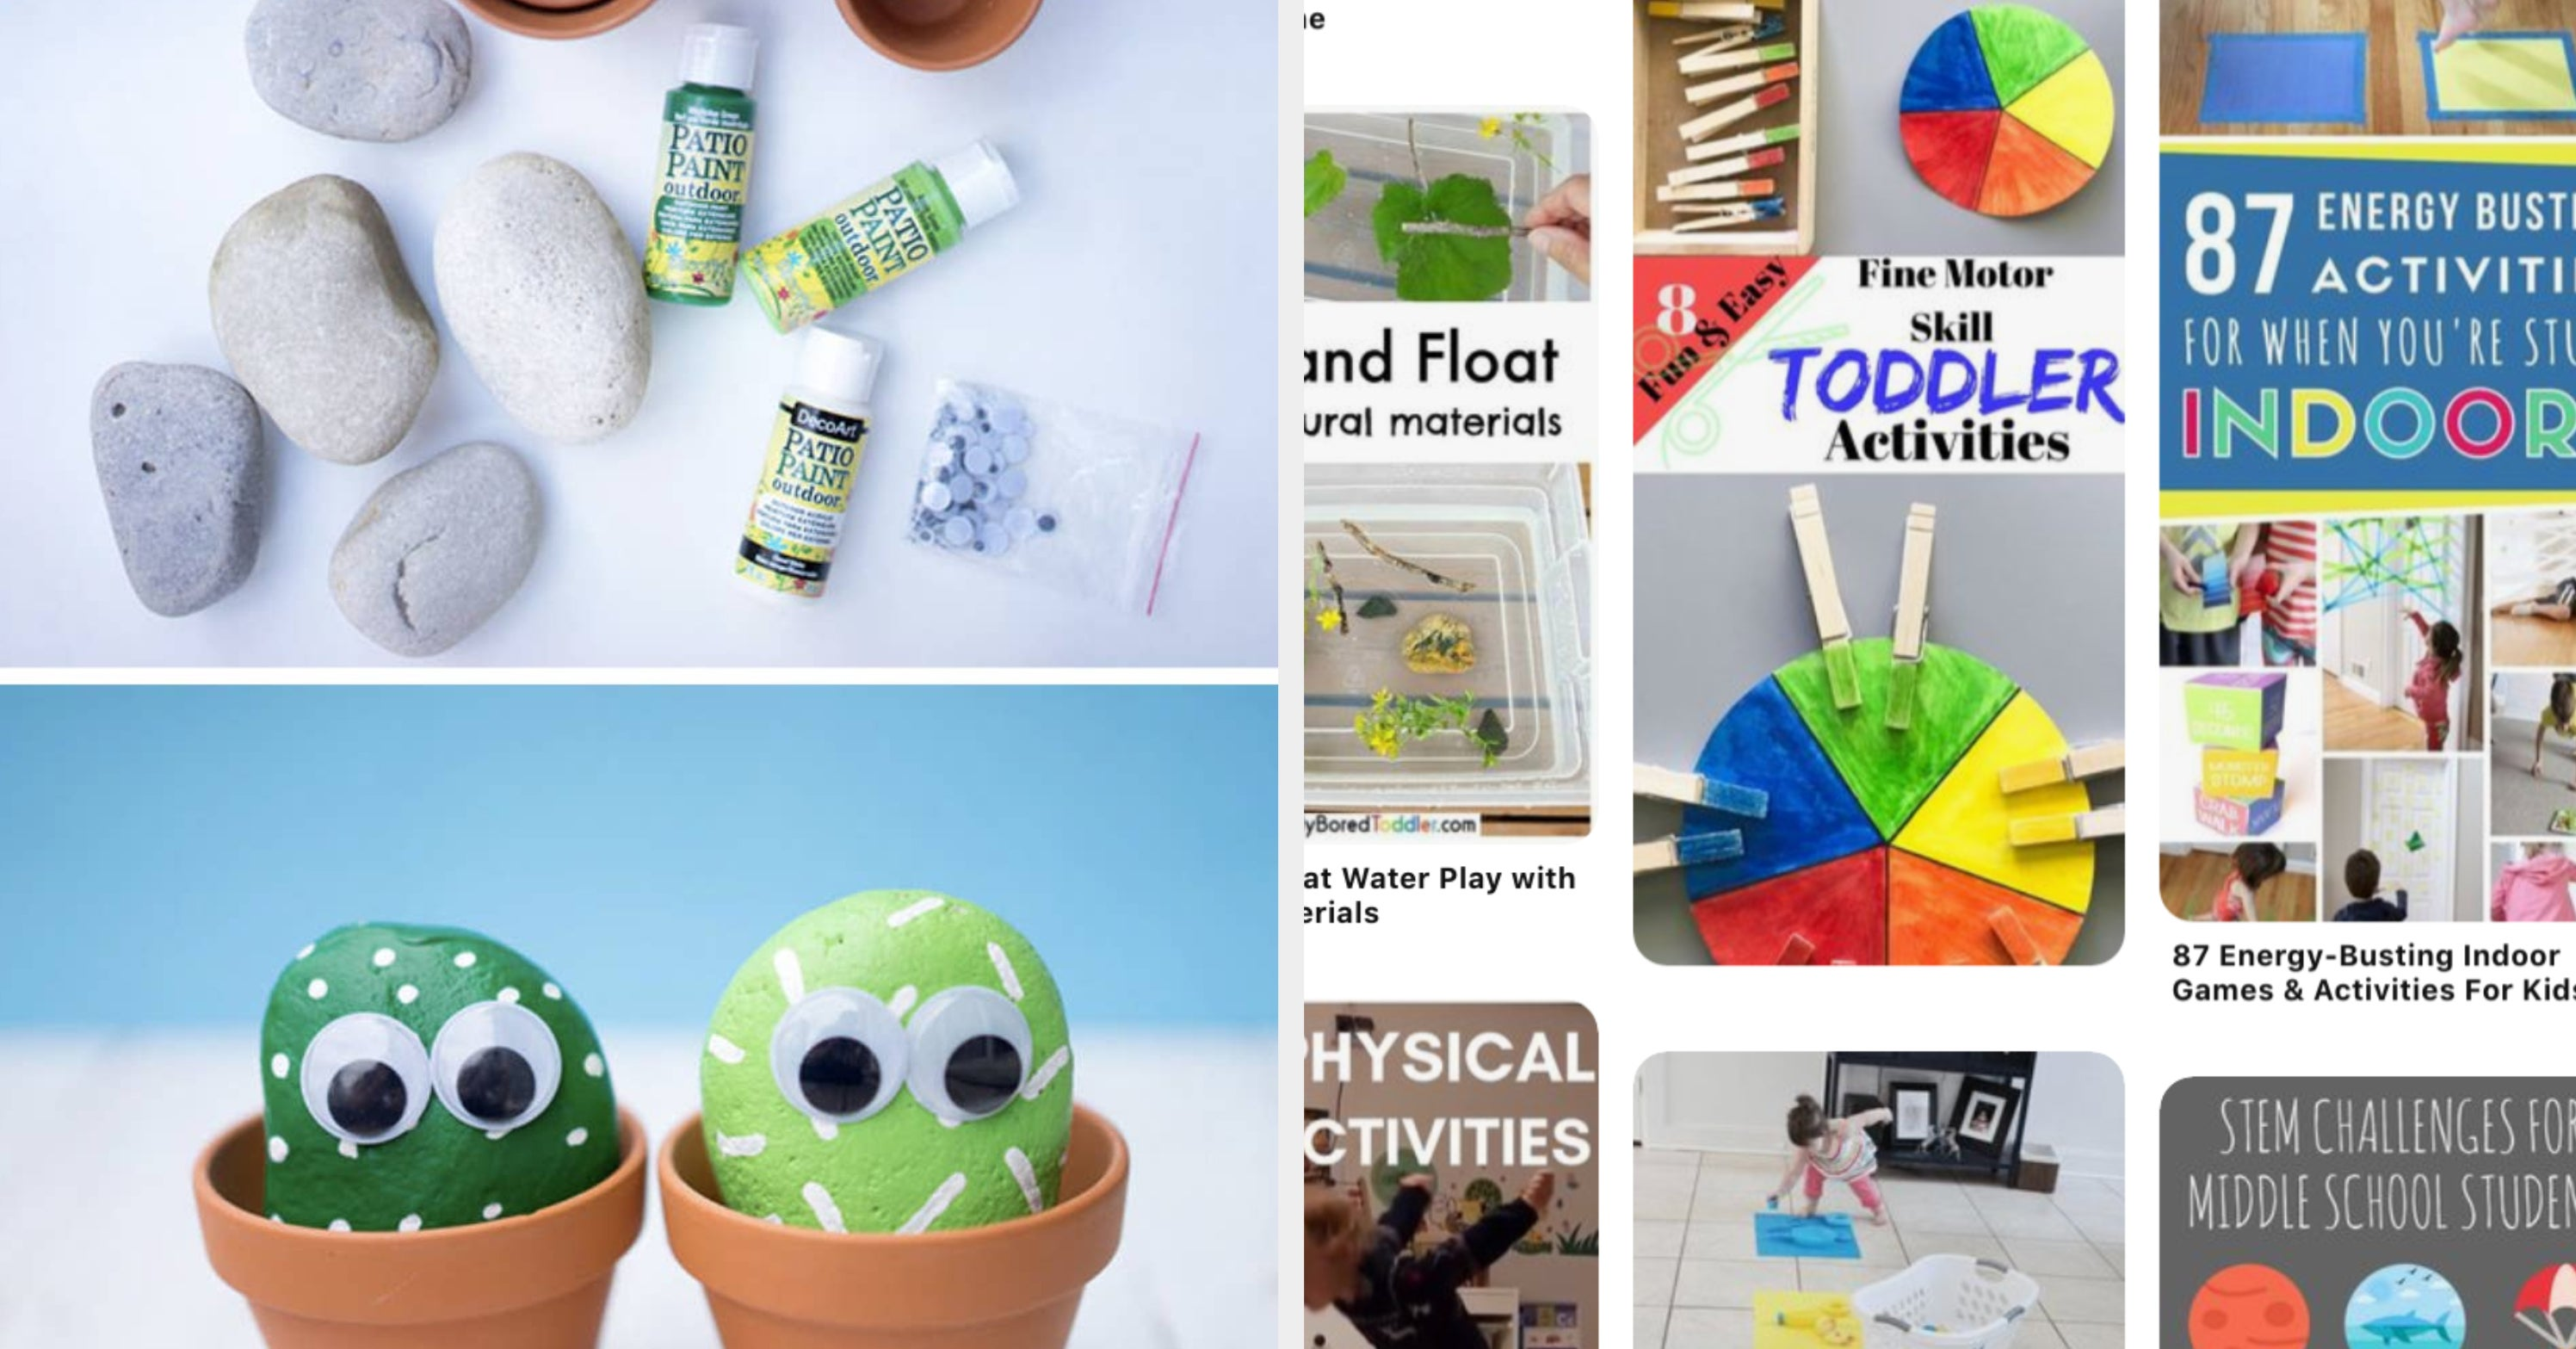 10 Very Doable At-Home Art Projects For Kids (That Won't Stress Parents Out)